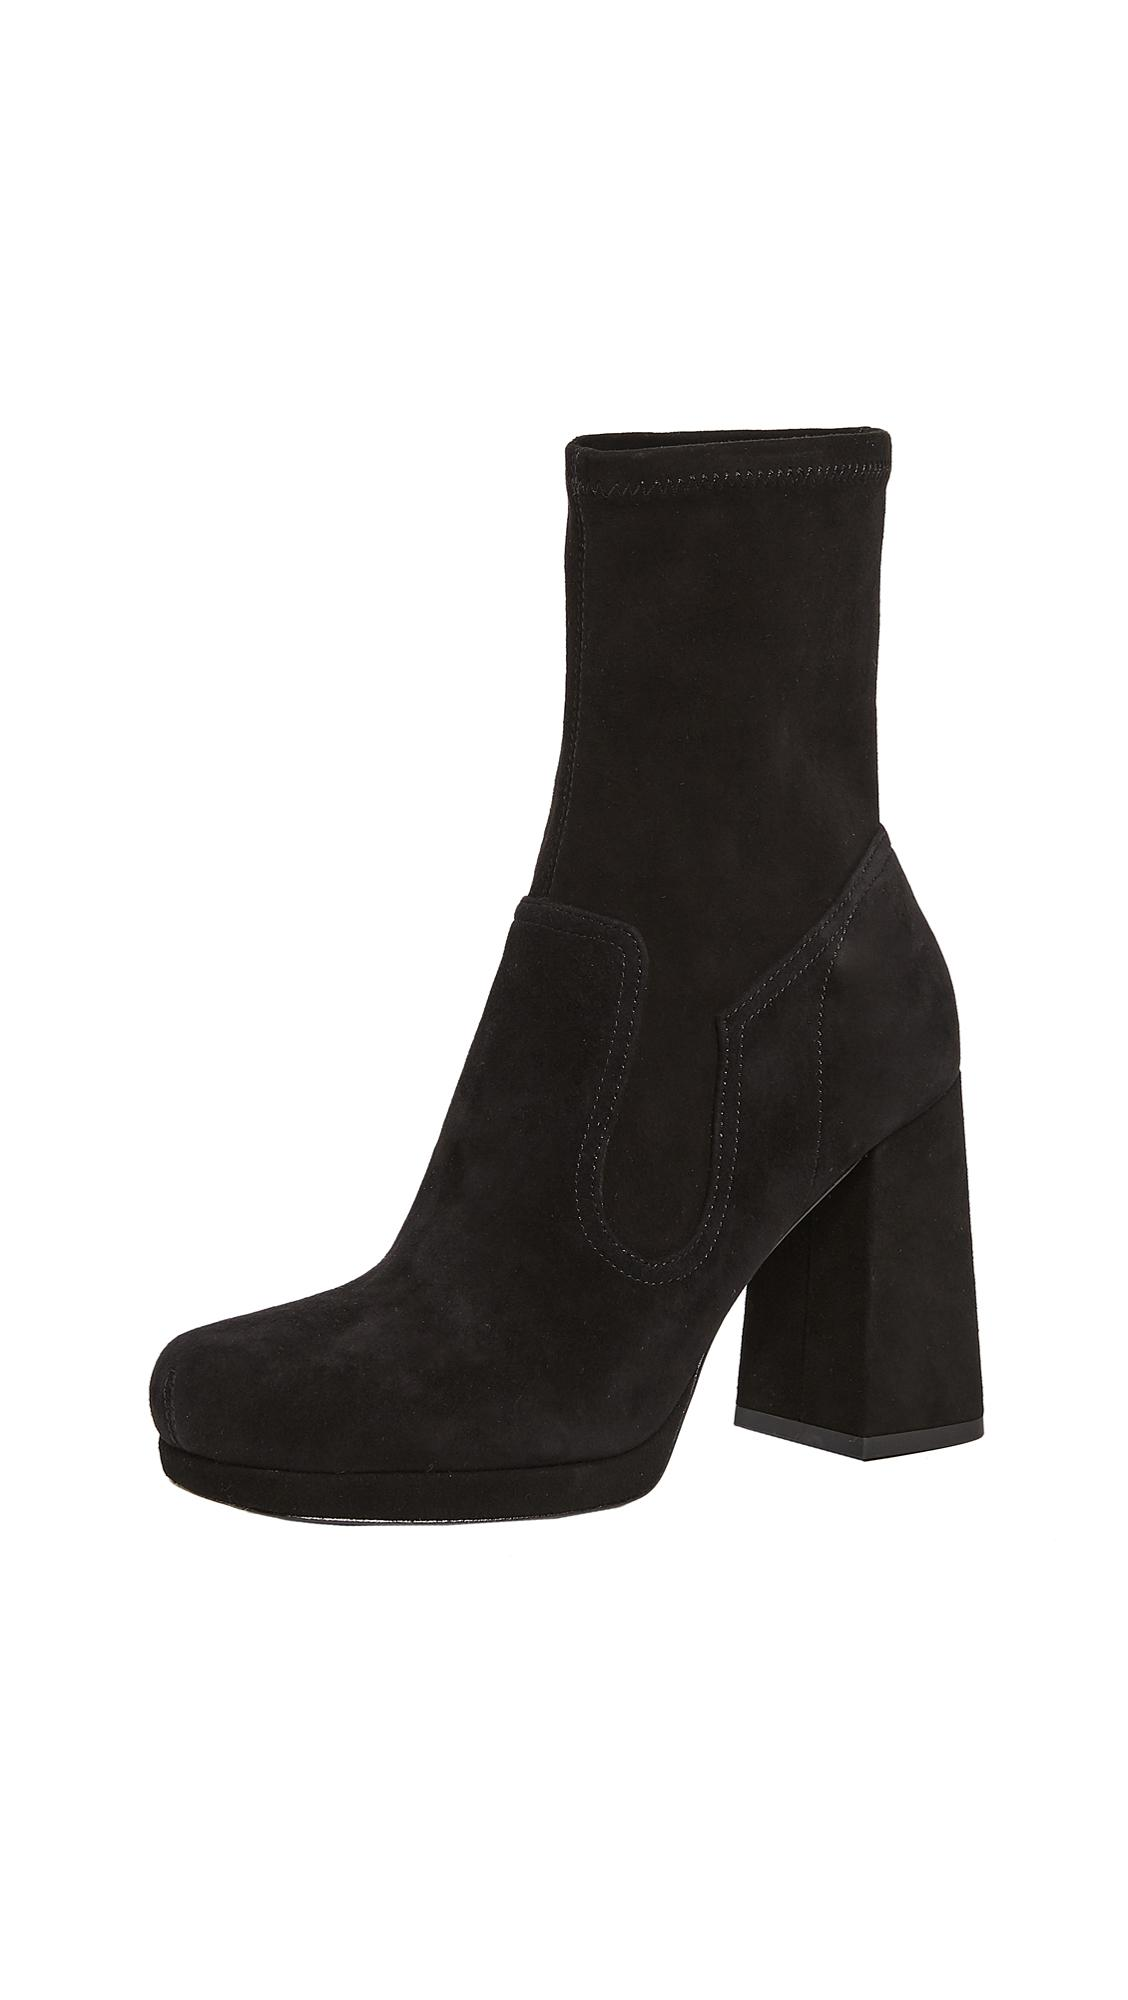 Marc Jacobs Suede Ross Stretch Ankle Booties in Black